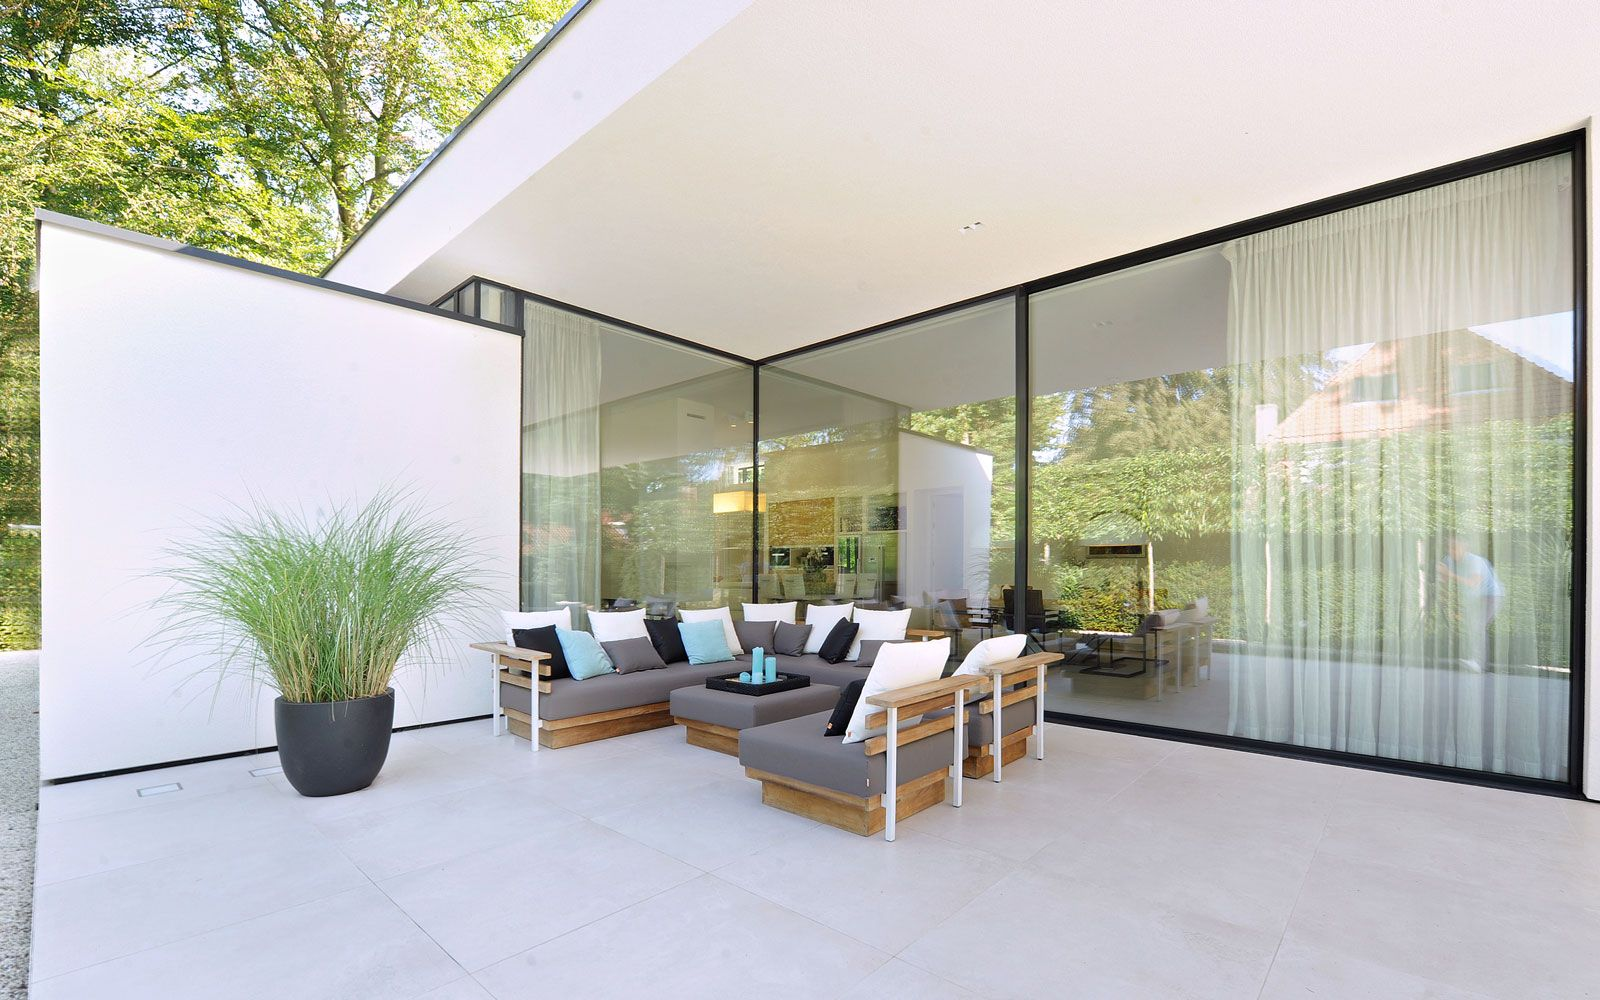 Bungalow | Pinterest | Tuin, Bungalow and Verandas